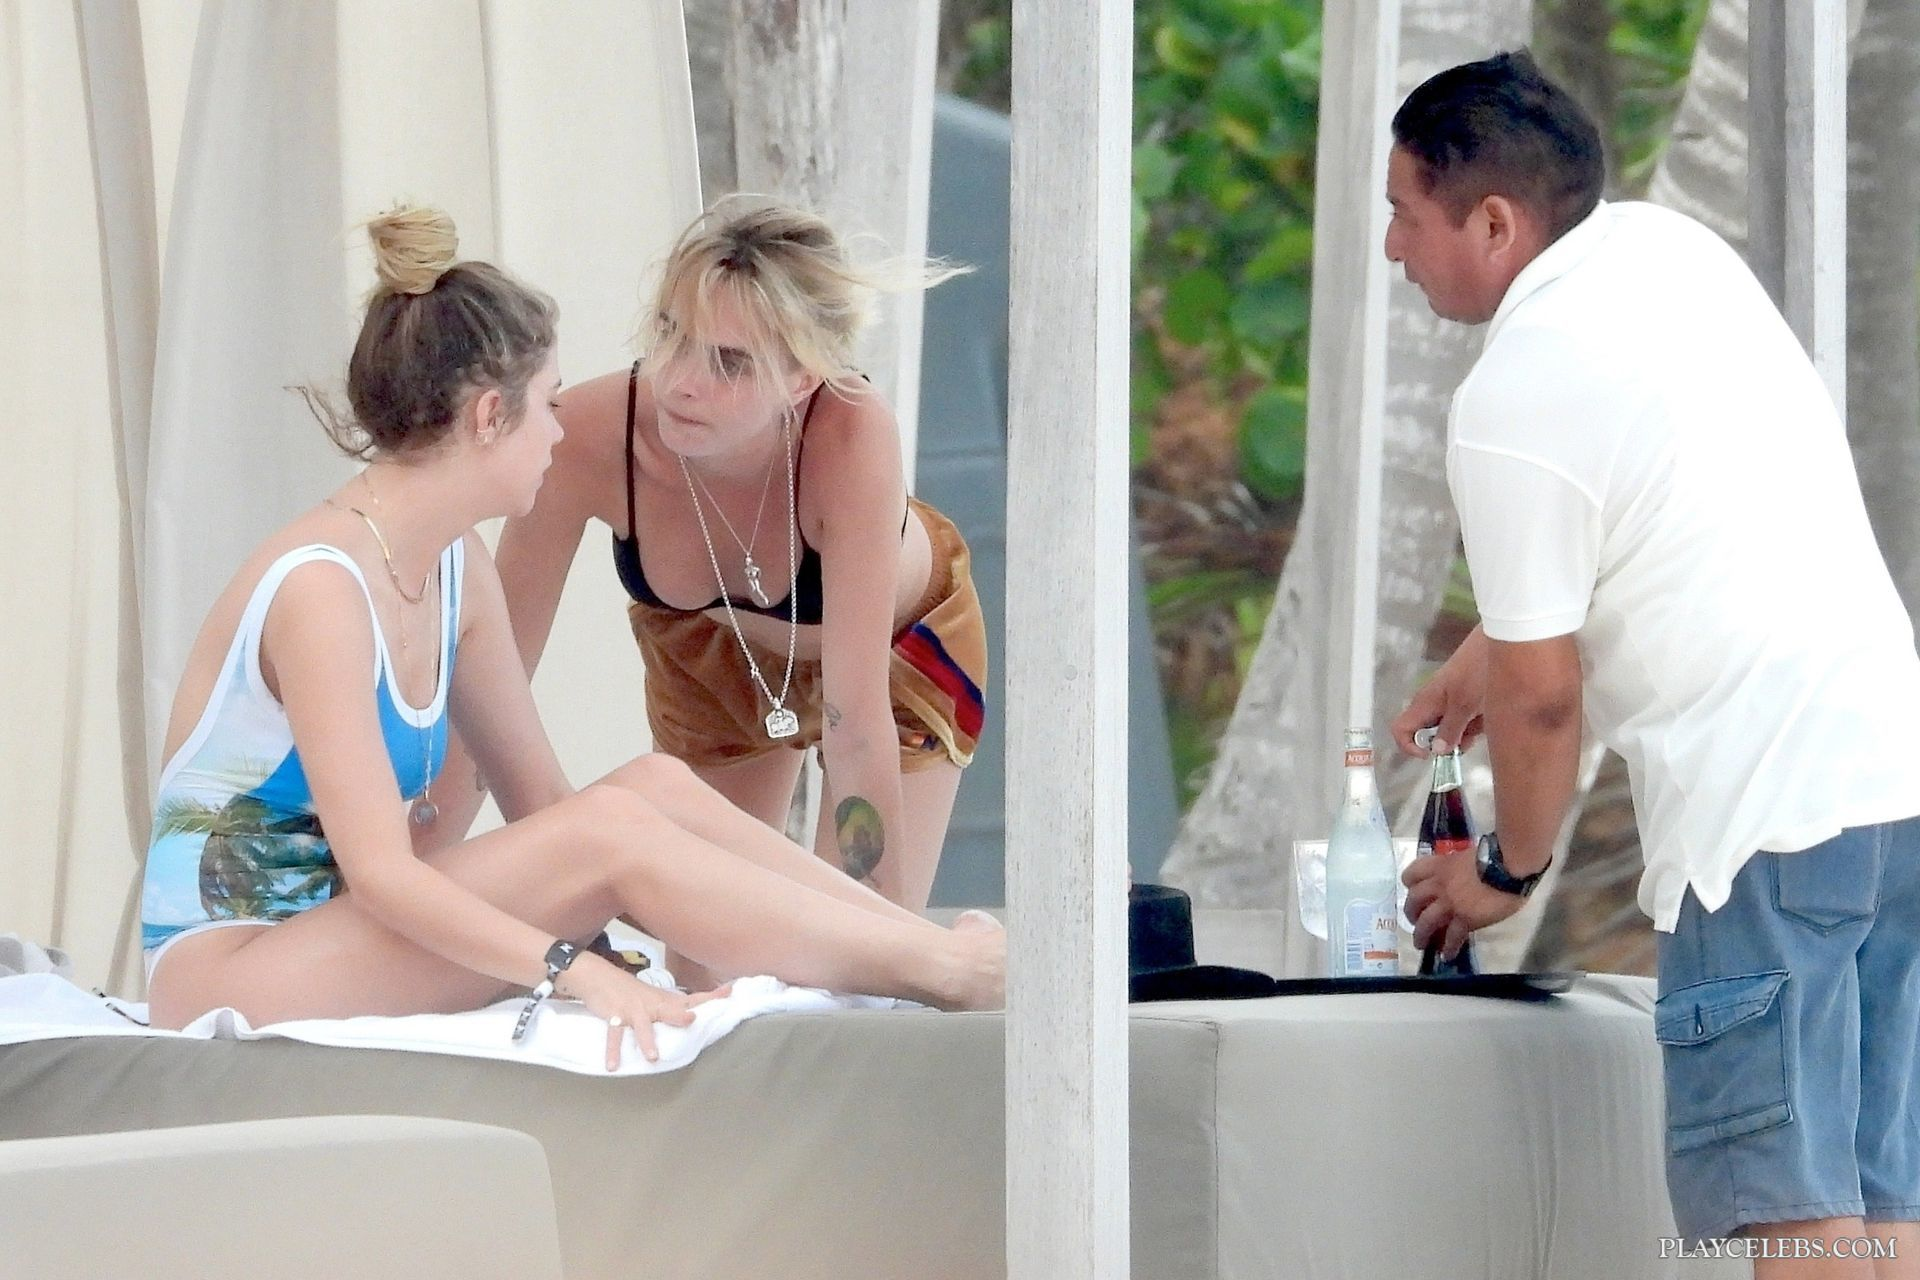 Ashley Benson & Cara Delevingne Caught By Paparazzi Tanning In Bikini